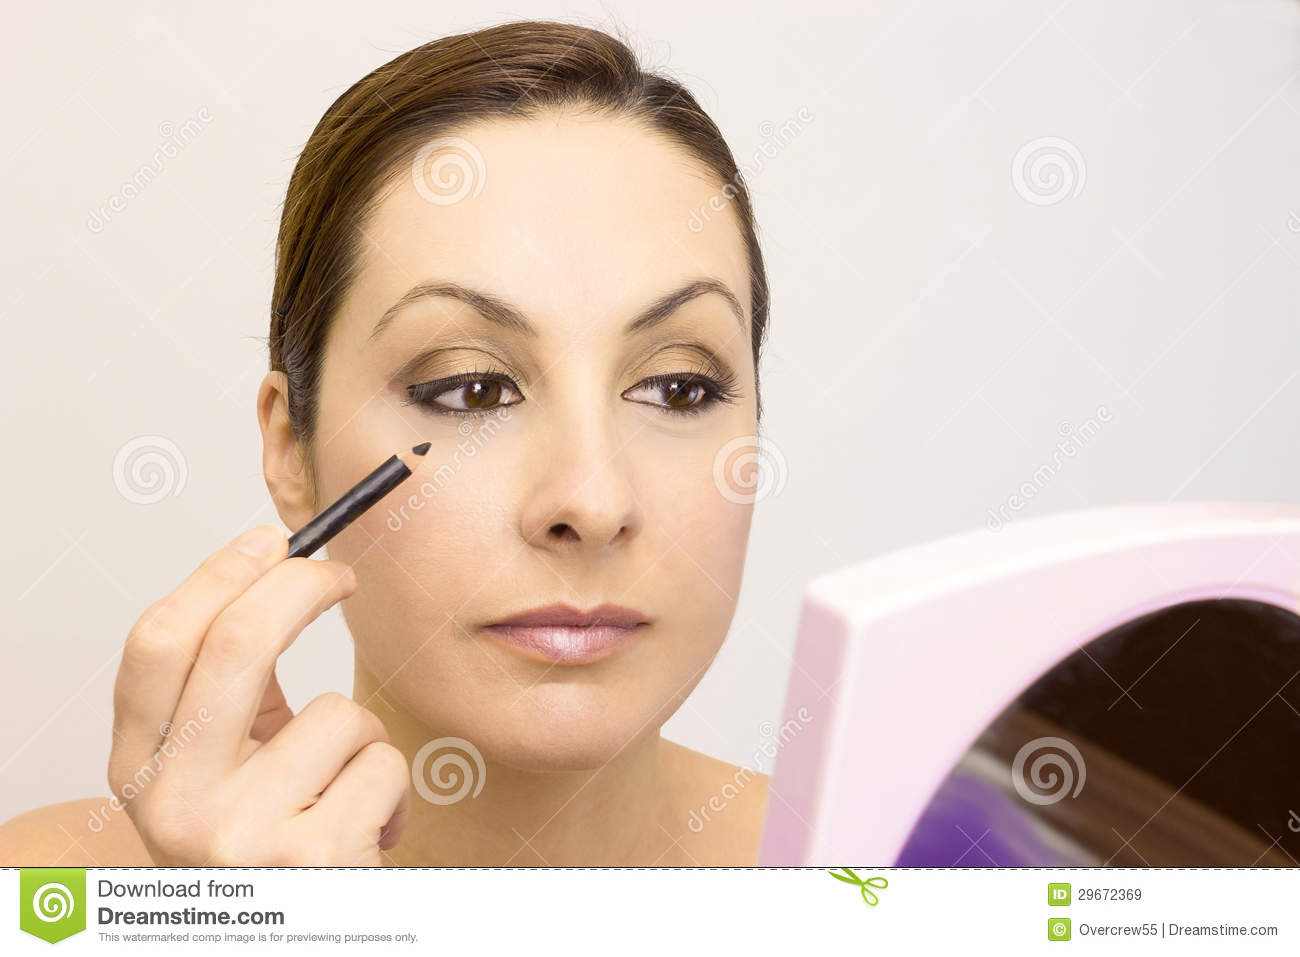 Best Makeup Foundation For Sensitive Skin How To Apply Makeup Videos